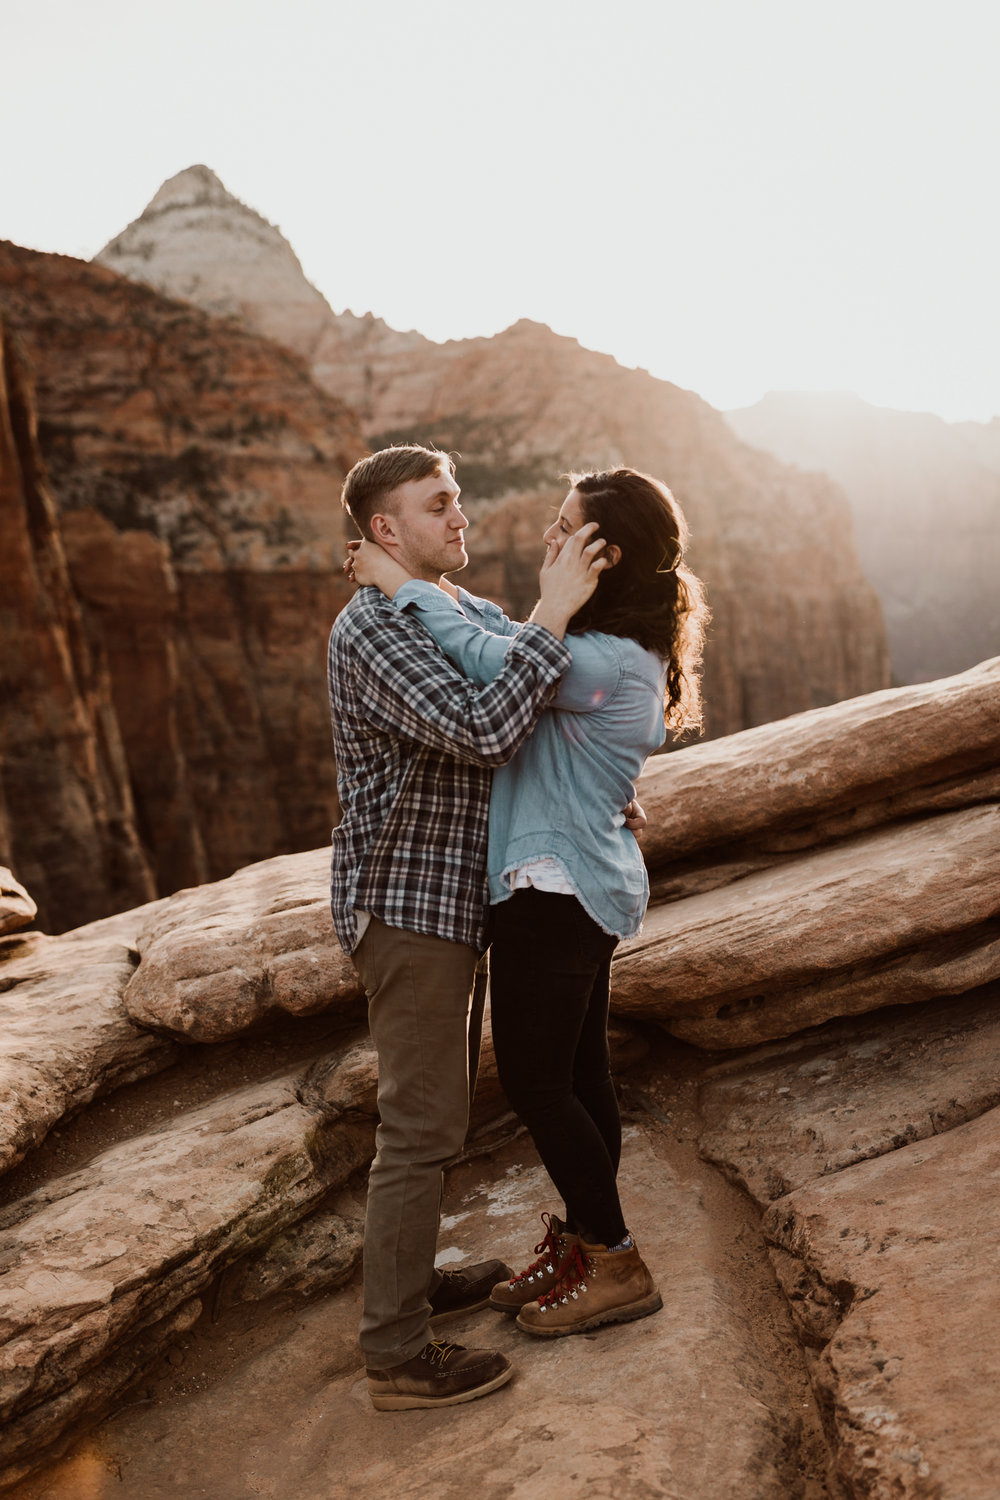 zion-national-park-engagements-27.jpg